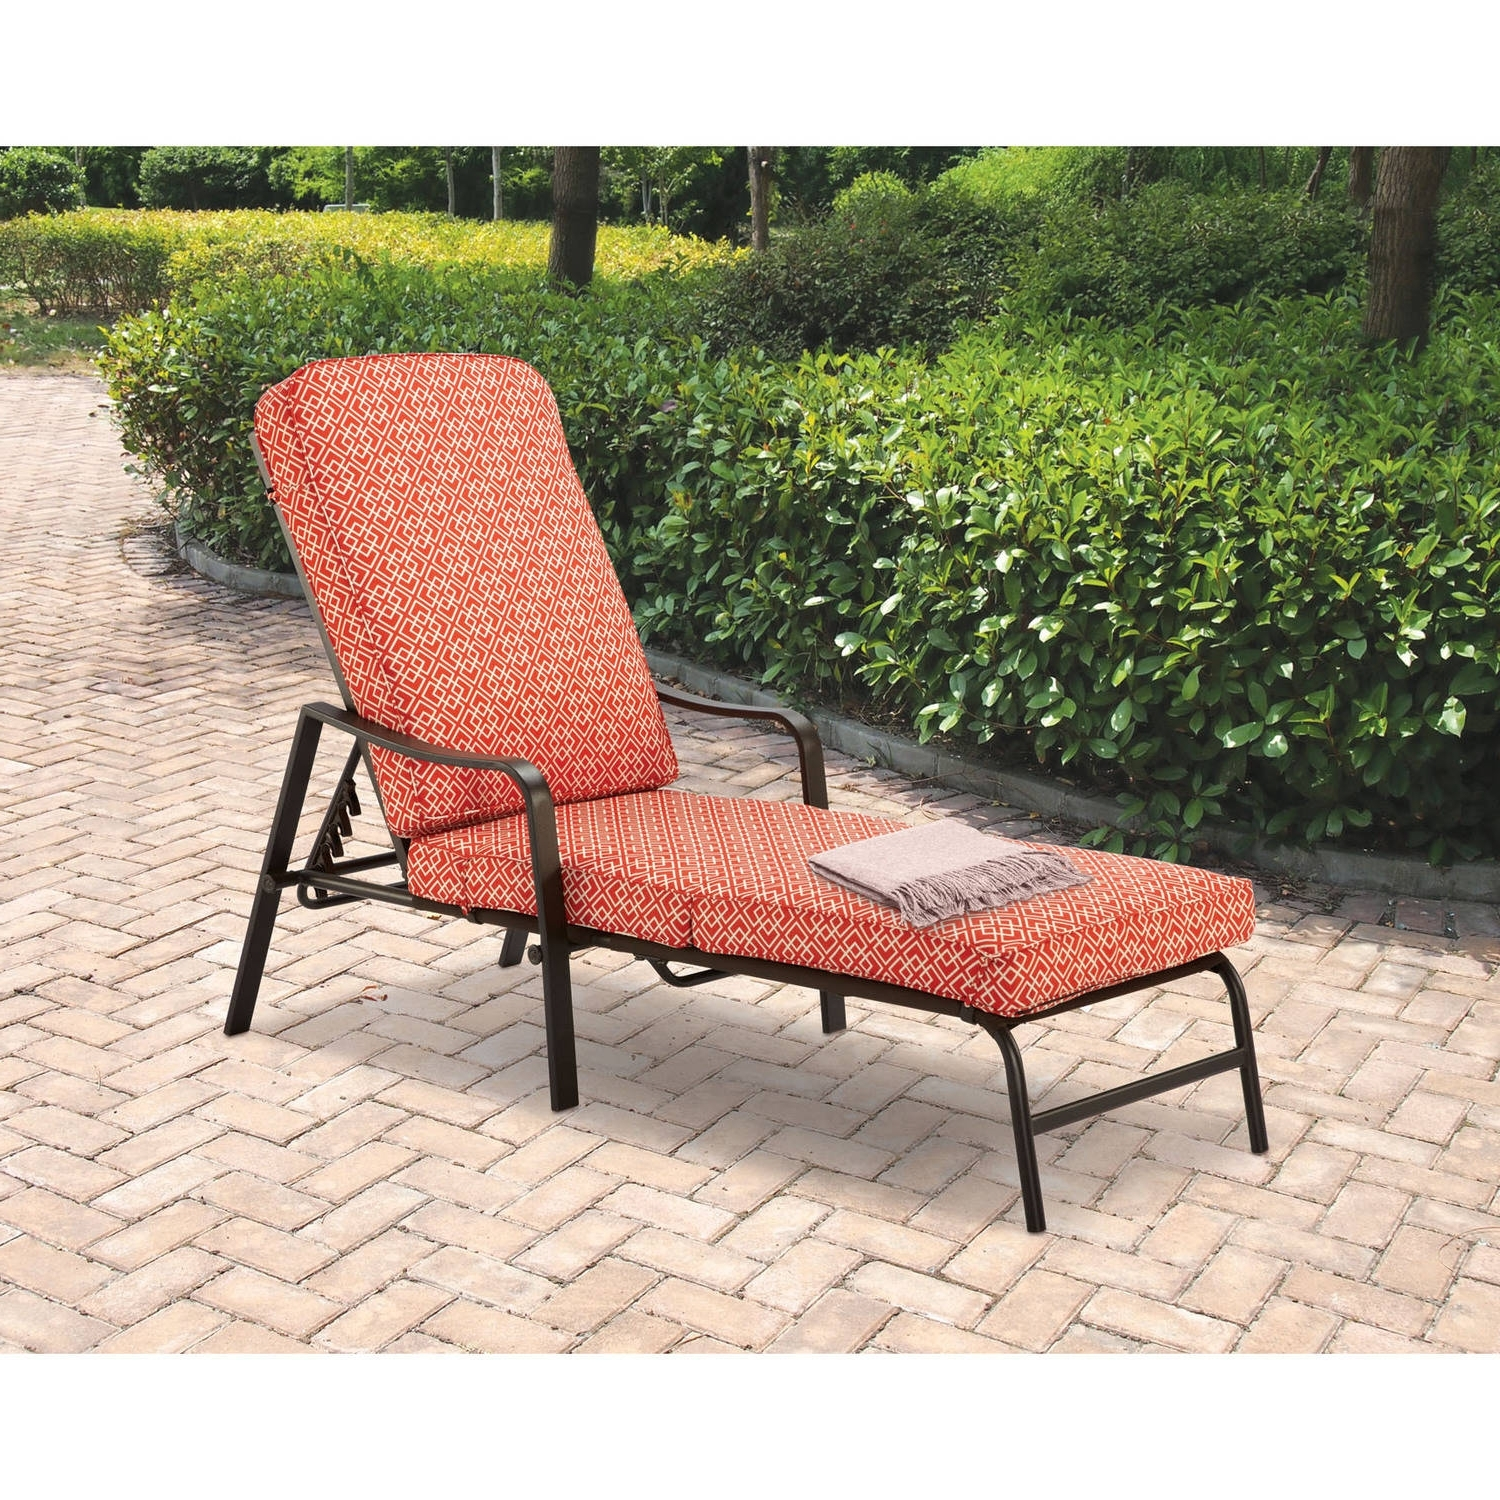 Walmart Chaise Lounge Chairs For Popular Mainstays Outdoor Chaise Lounge, Orange Geo Pattern – Walmart (View 12 of 15)